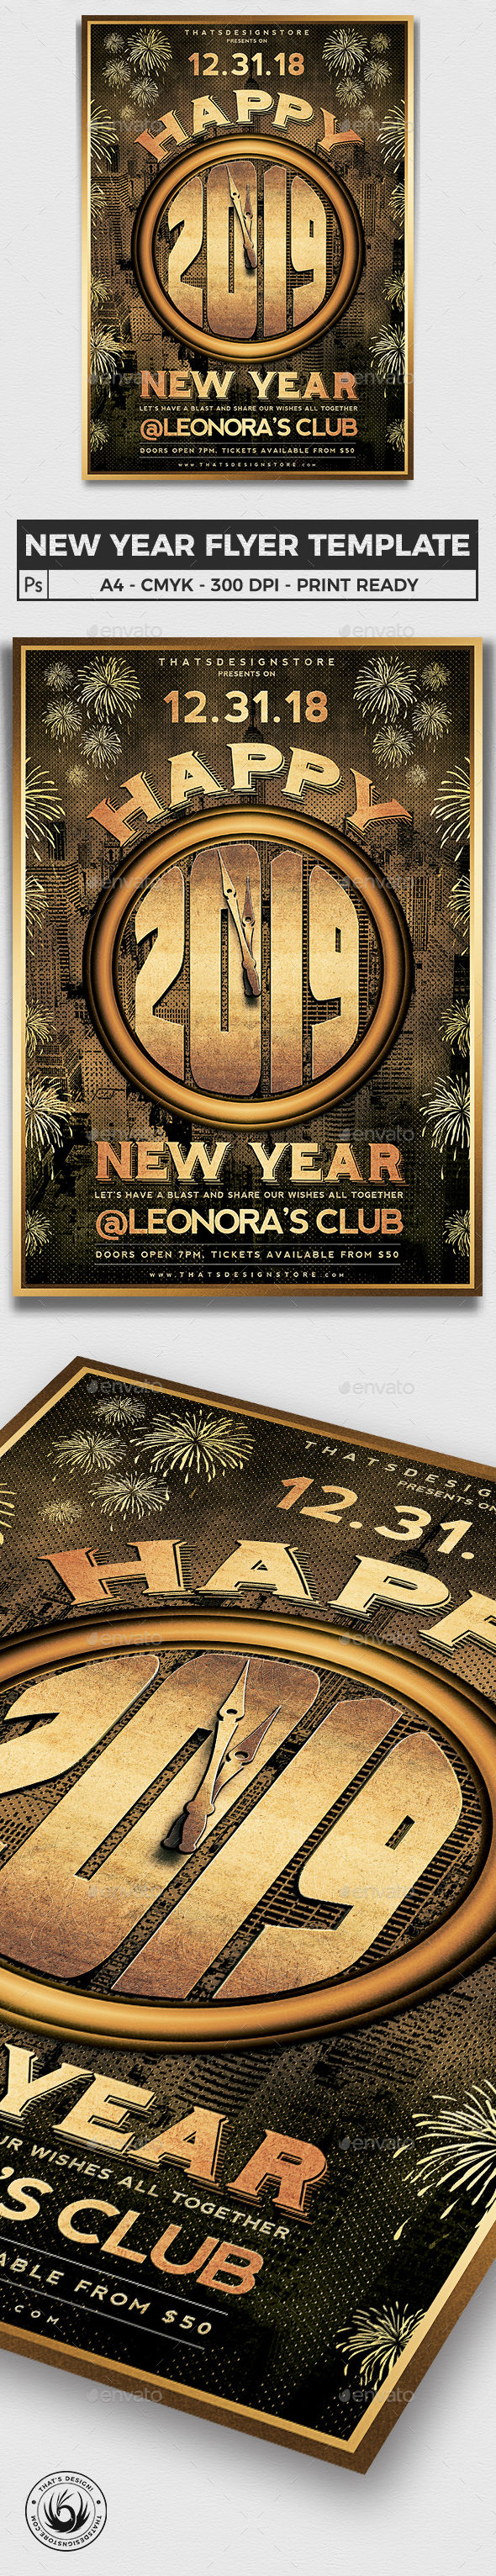 New Year Flyer Template V4 - Clubs & Parties Events